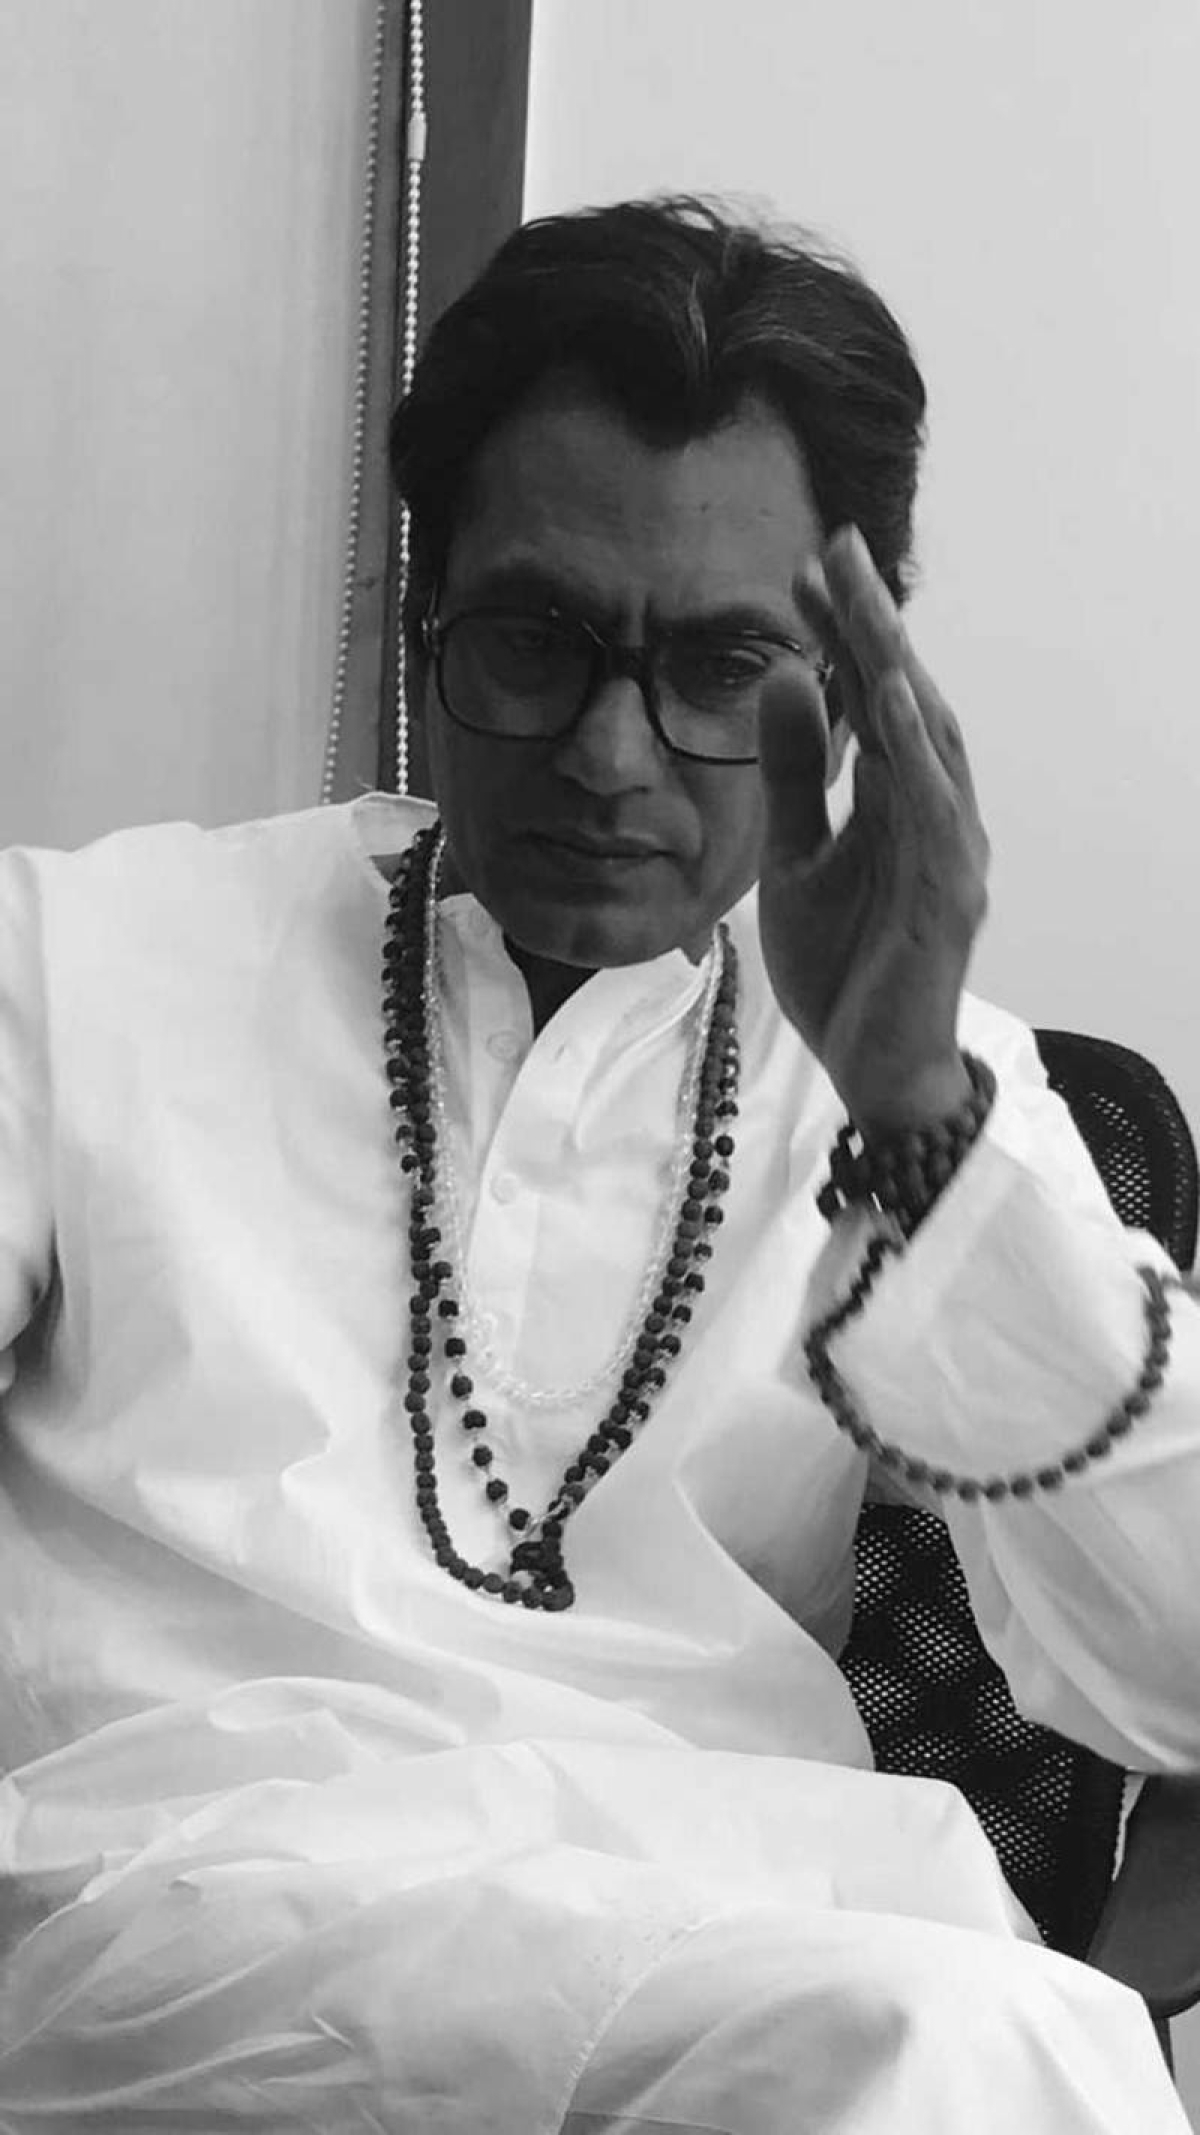 Revealed! First look of Nawazuddin Siddiqui as Bal Thackeray in biopic